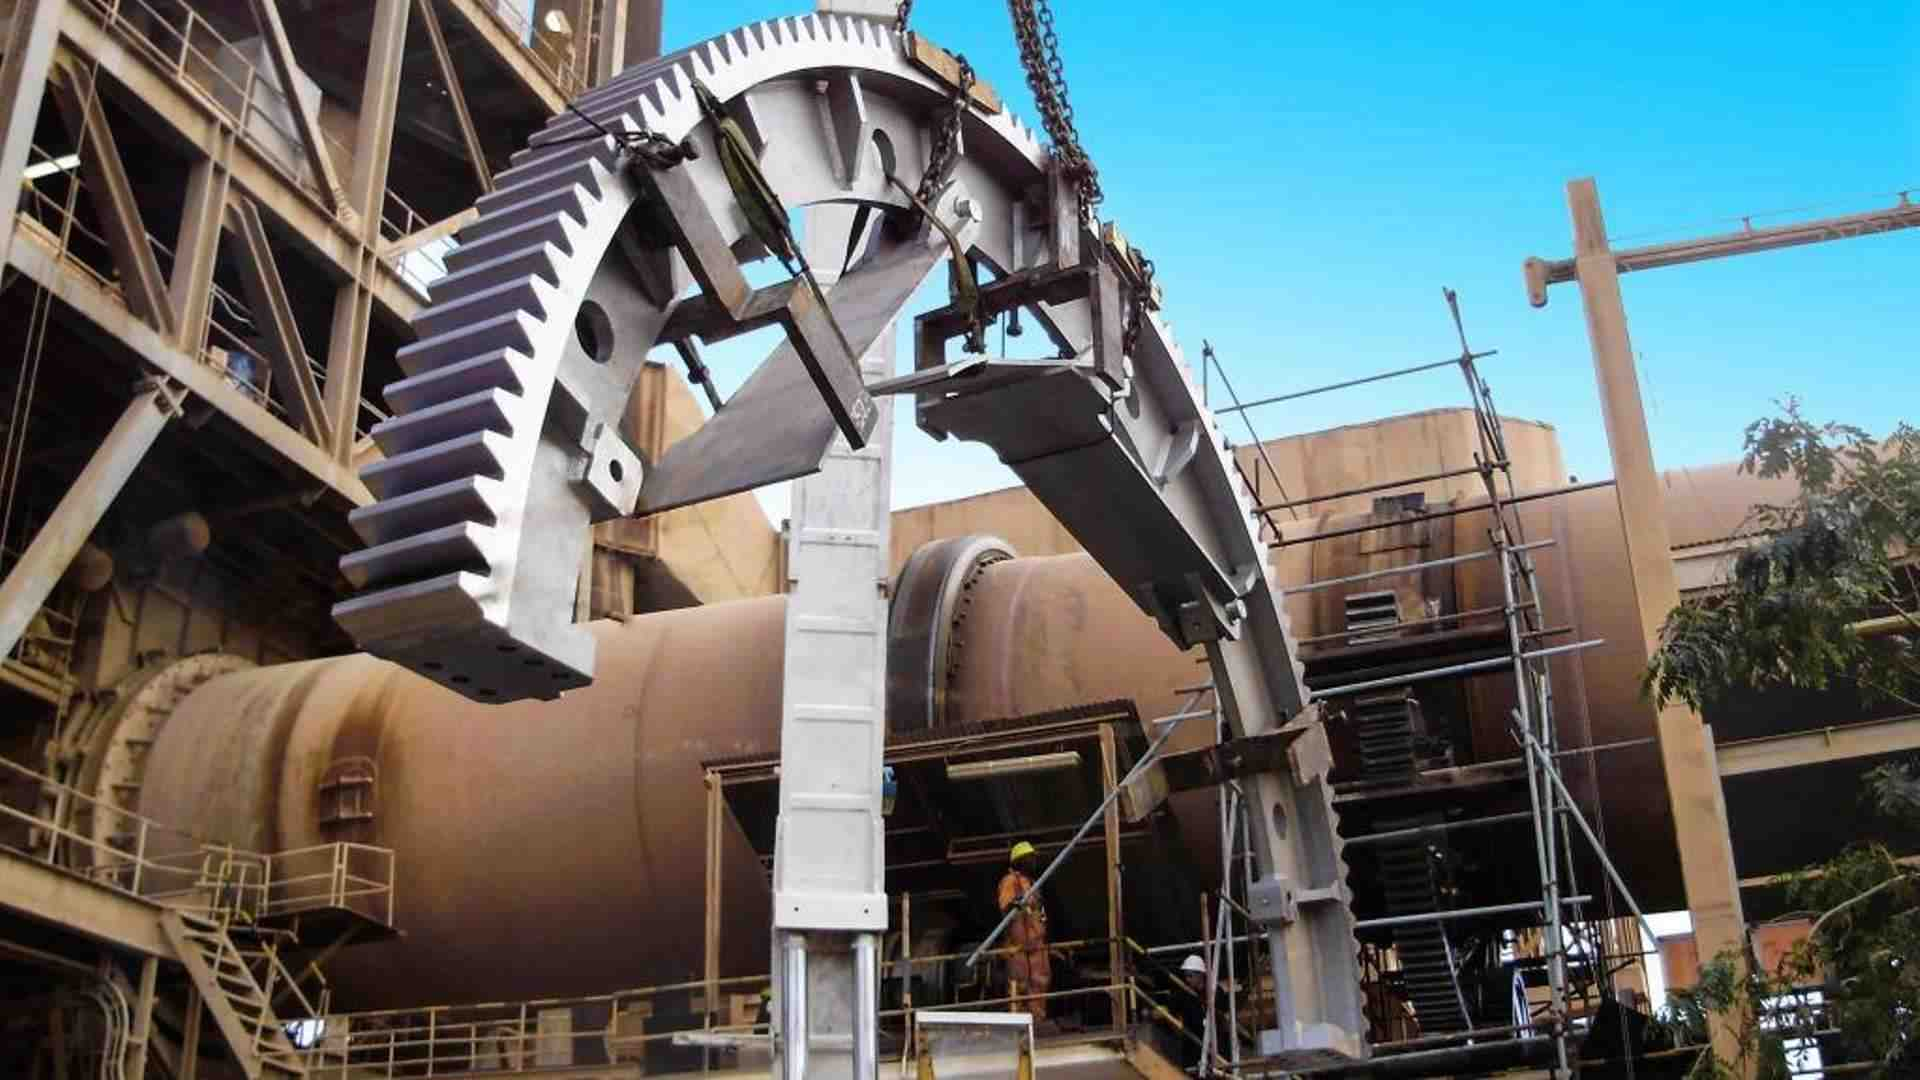 MAAG® Girth gear hanging from a crane hook in front of a cement kiln